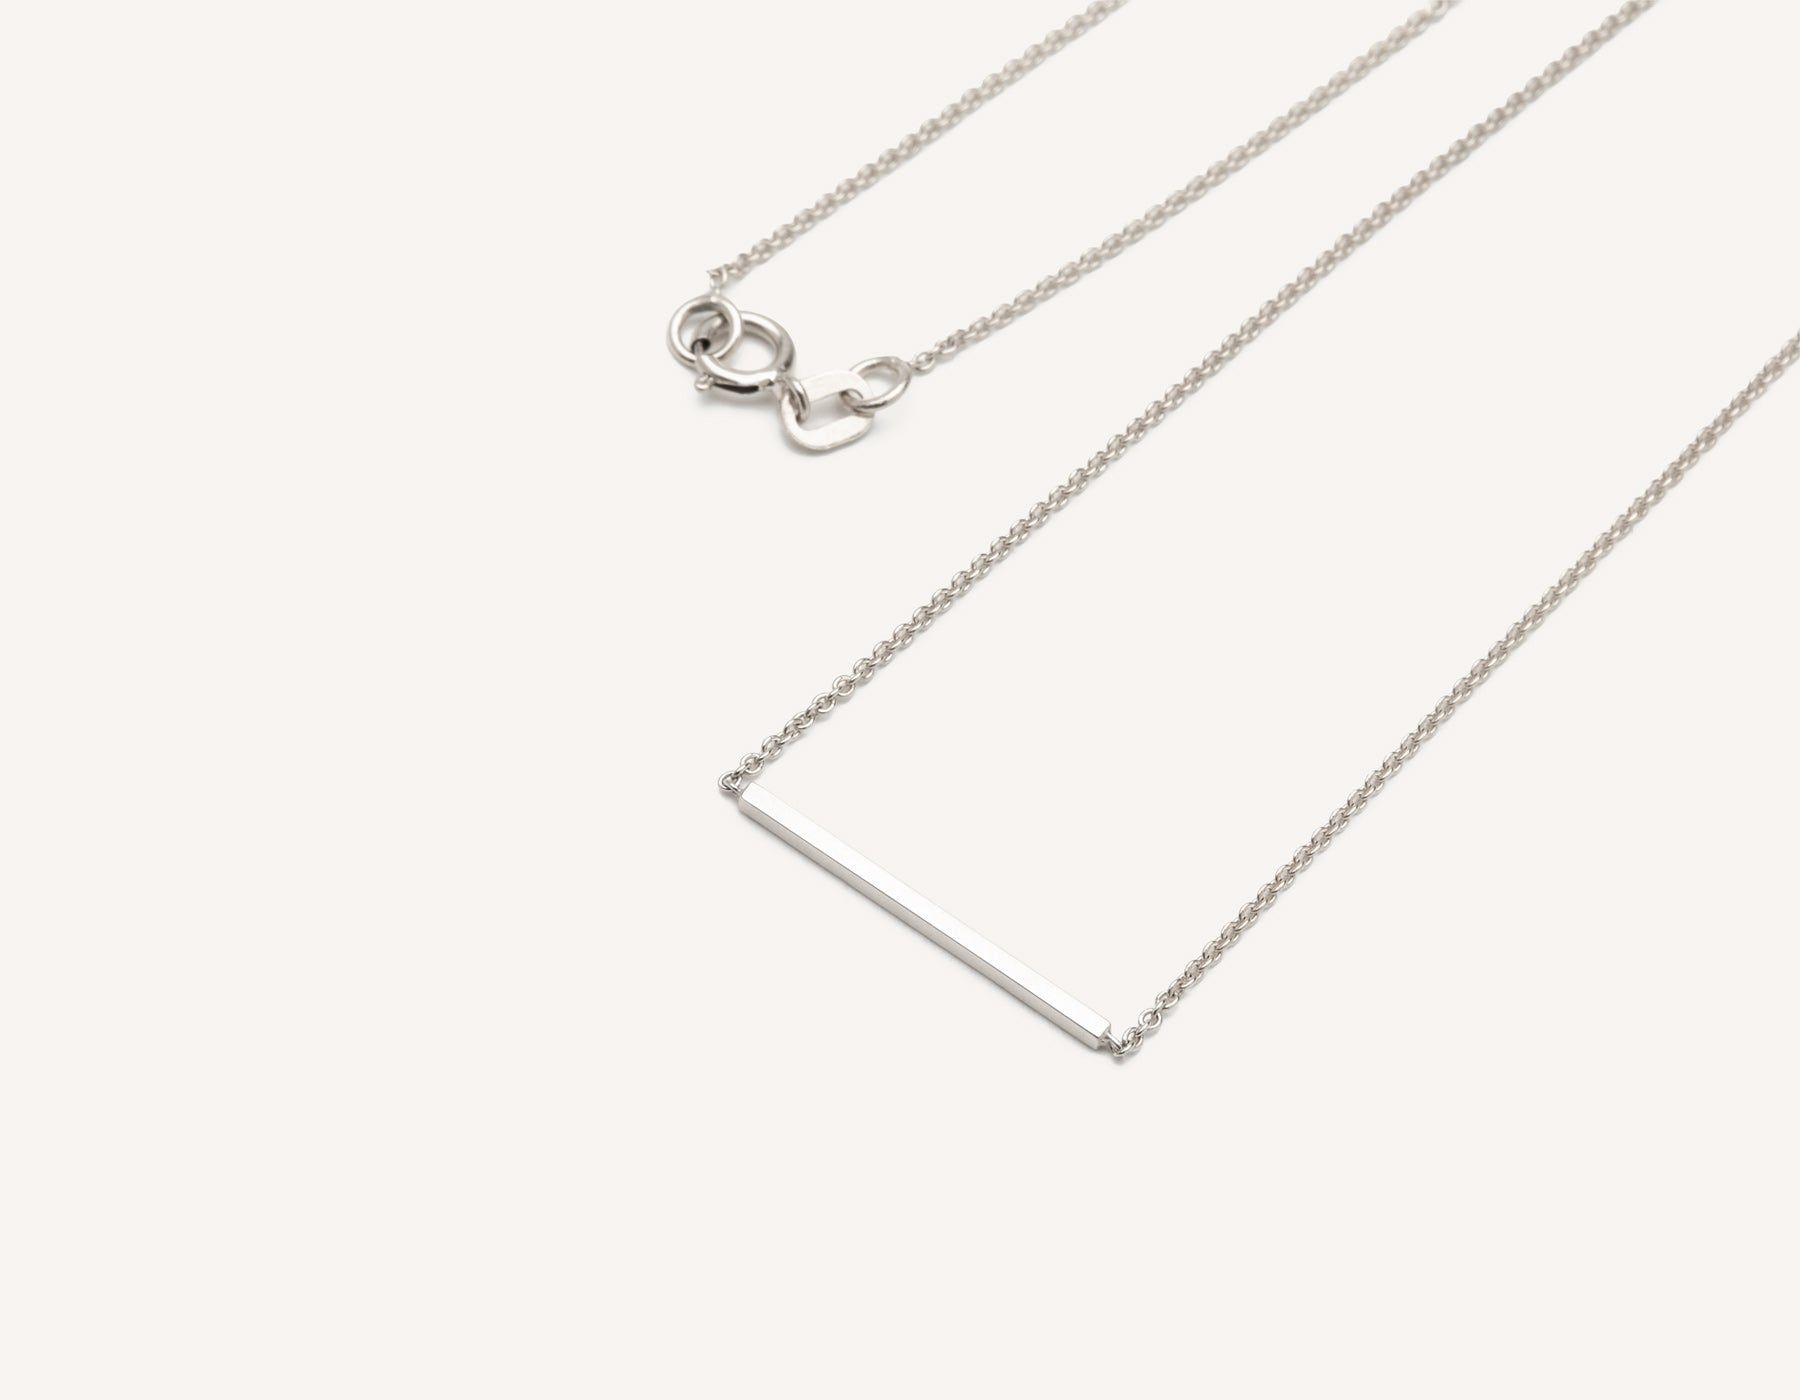 Line Necklace 14k solid gold small bar delicate chain spring ring clasp Vrai & Oro, 14K White Gold